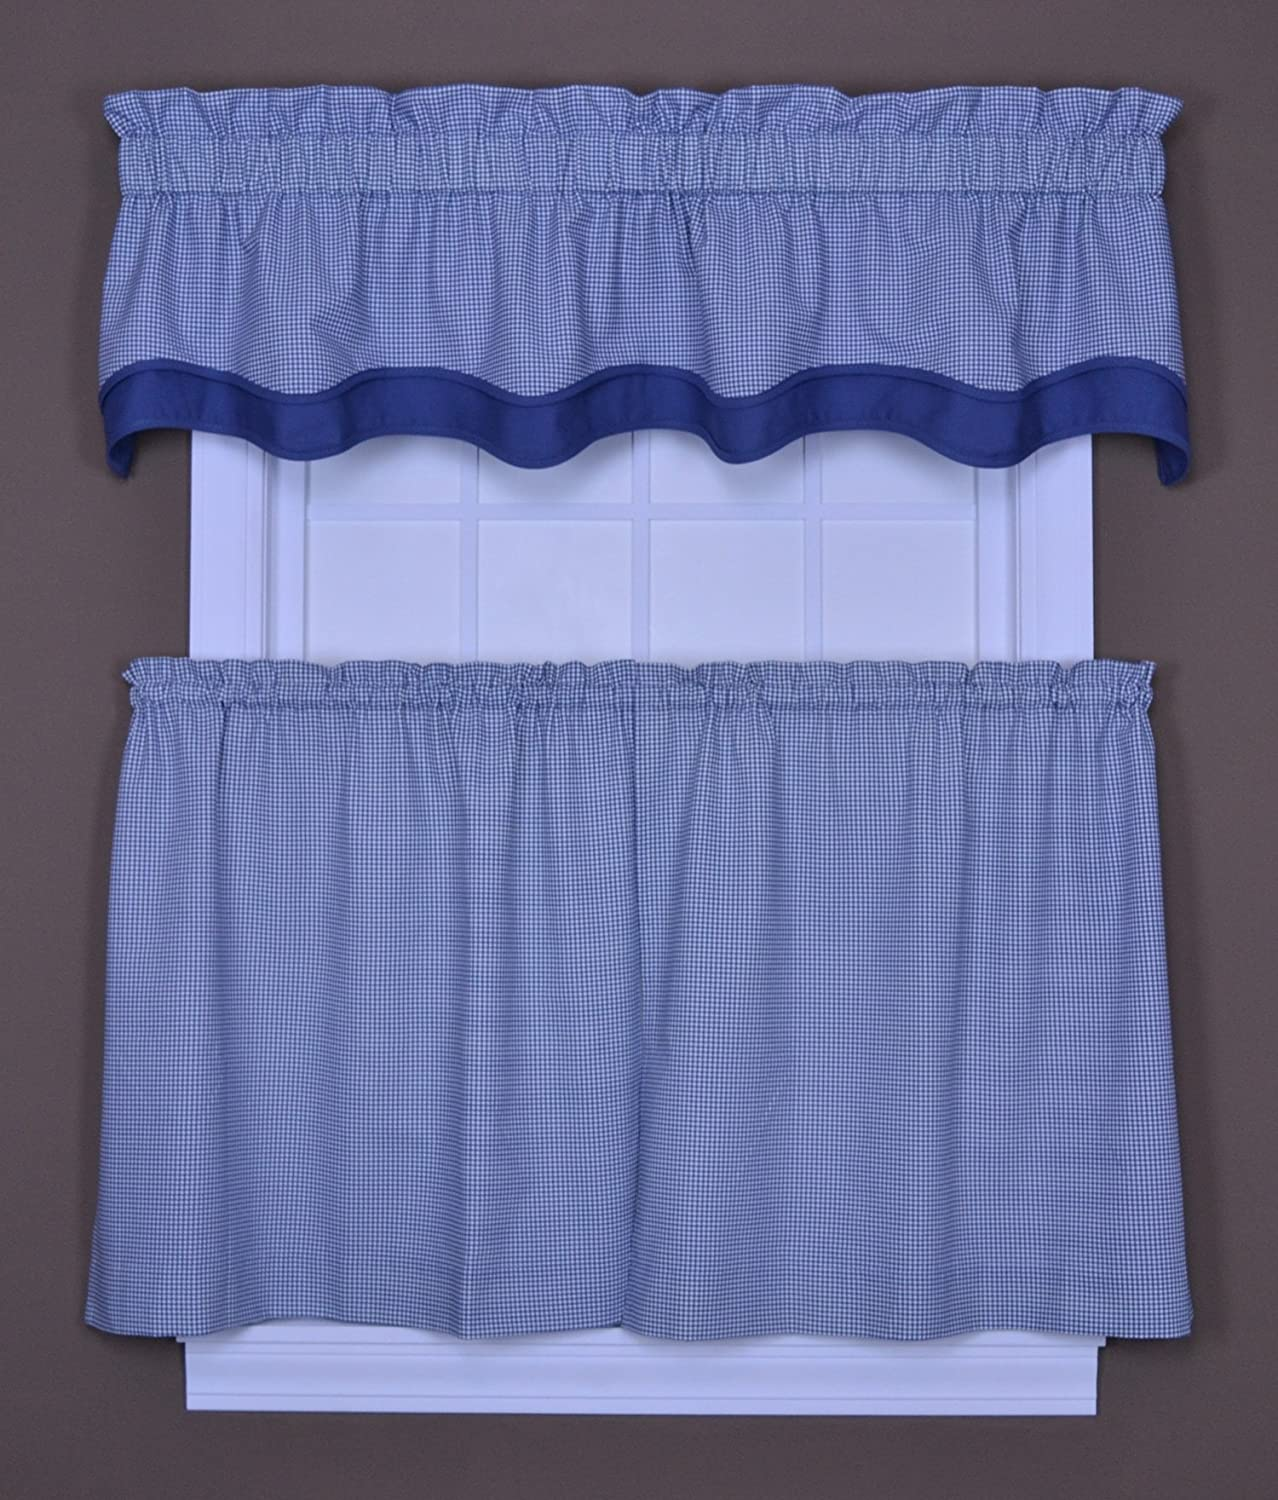 Blue Ellis Curtain 774309 Logan Gingham Check Print 68-Inch by 30-Inch Tailored Tier Curtains